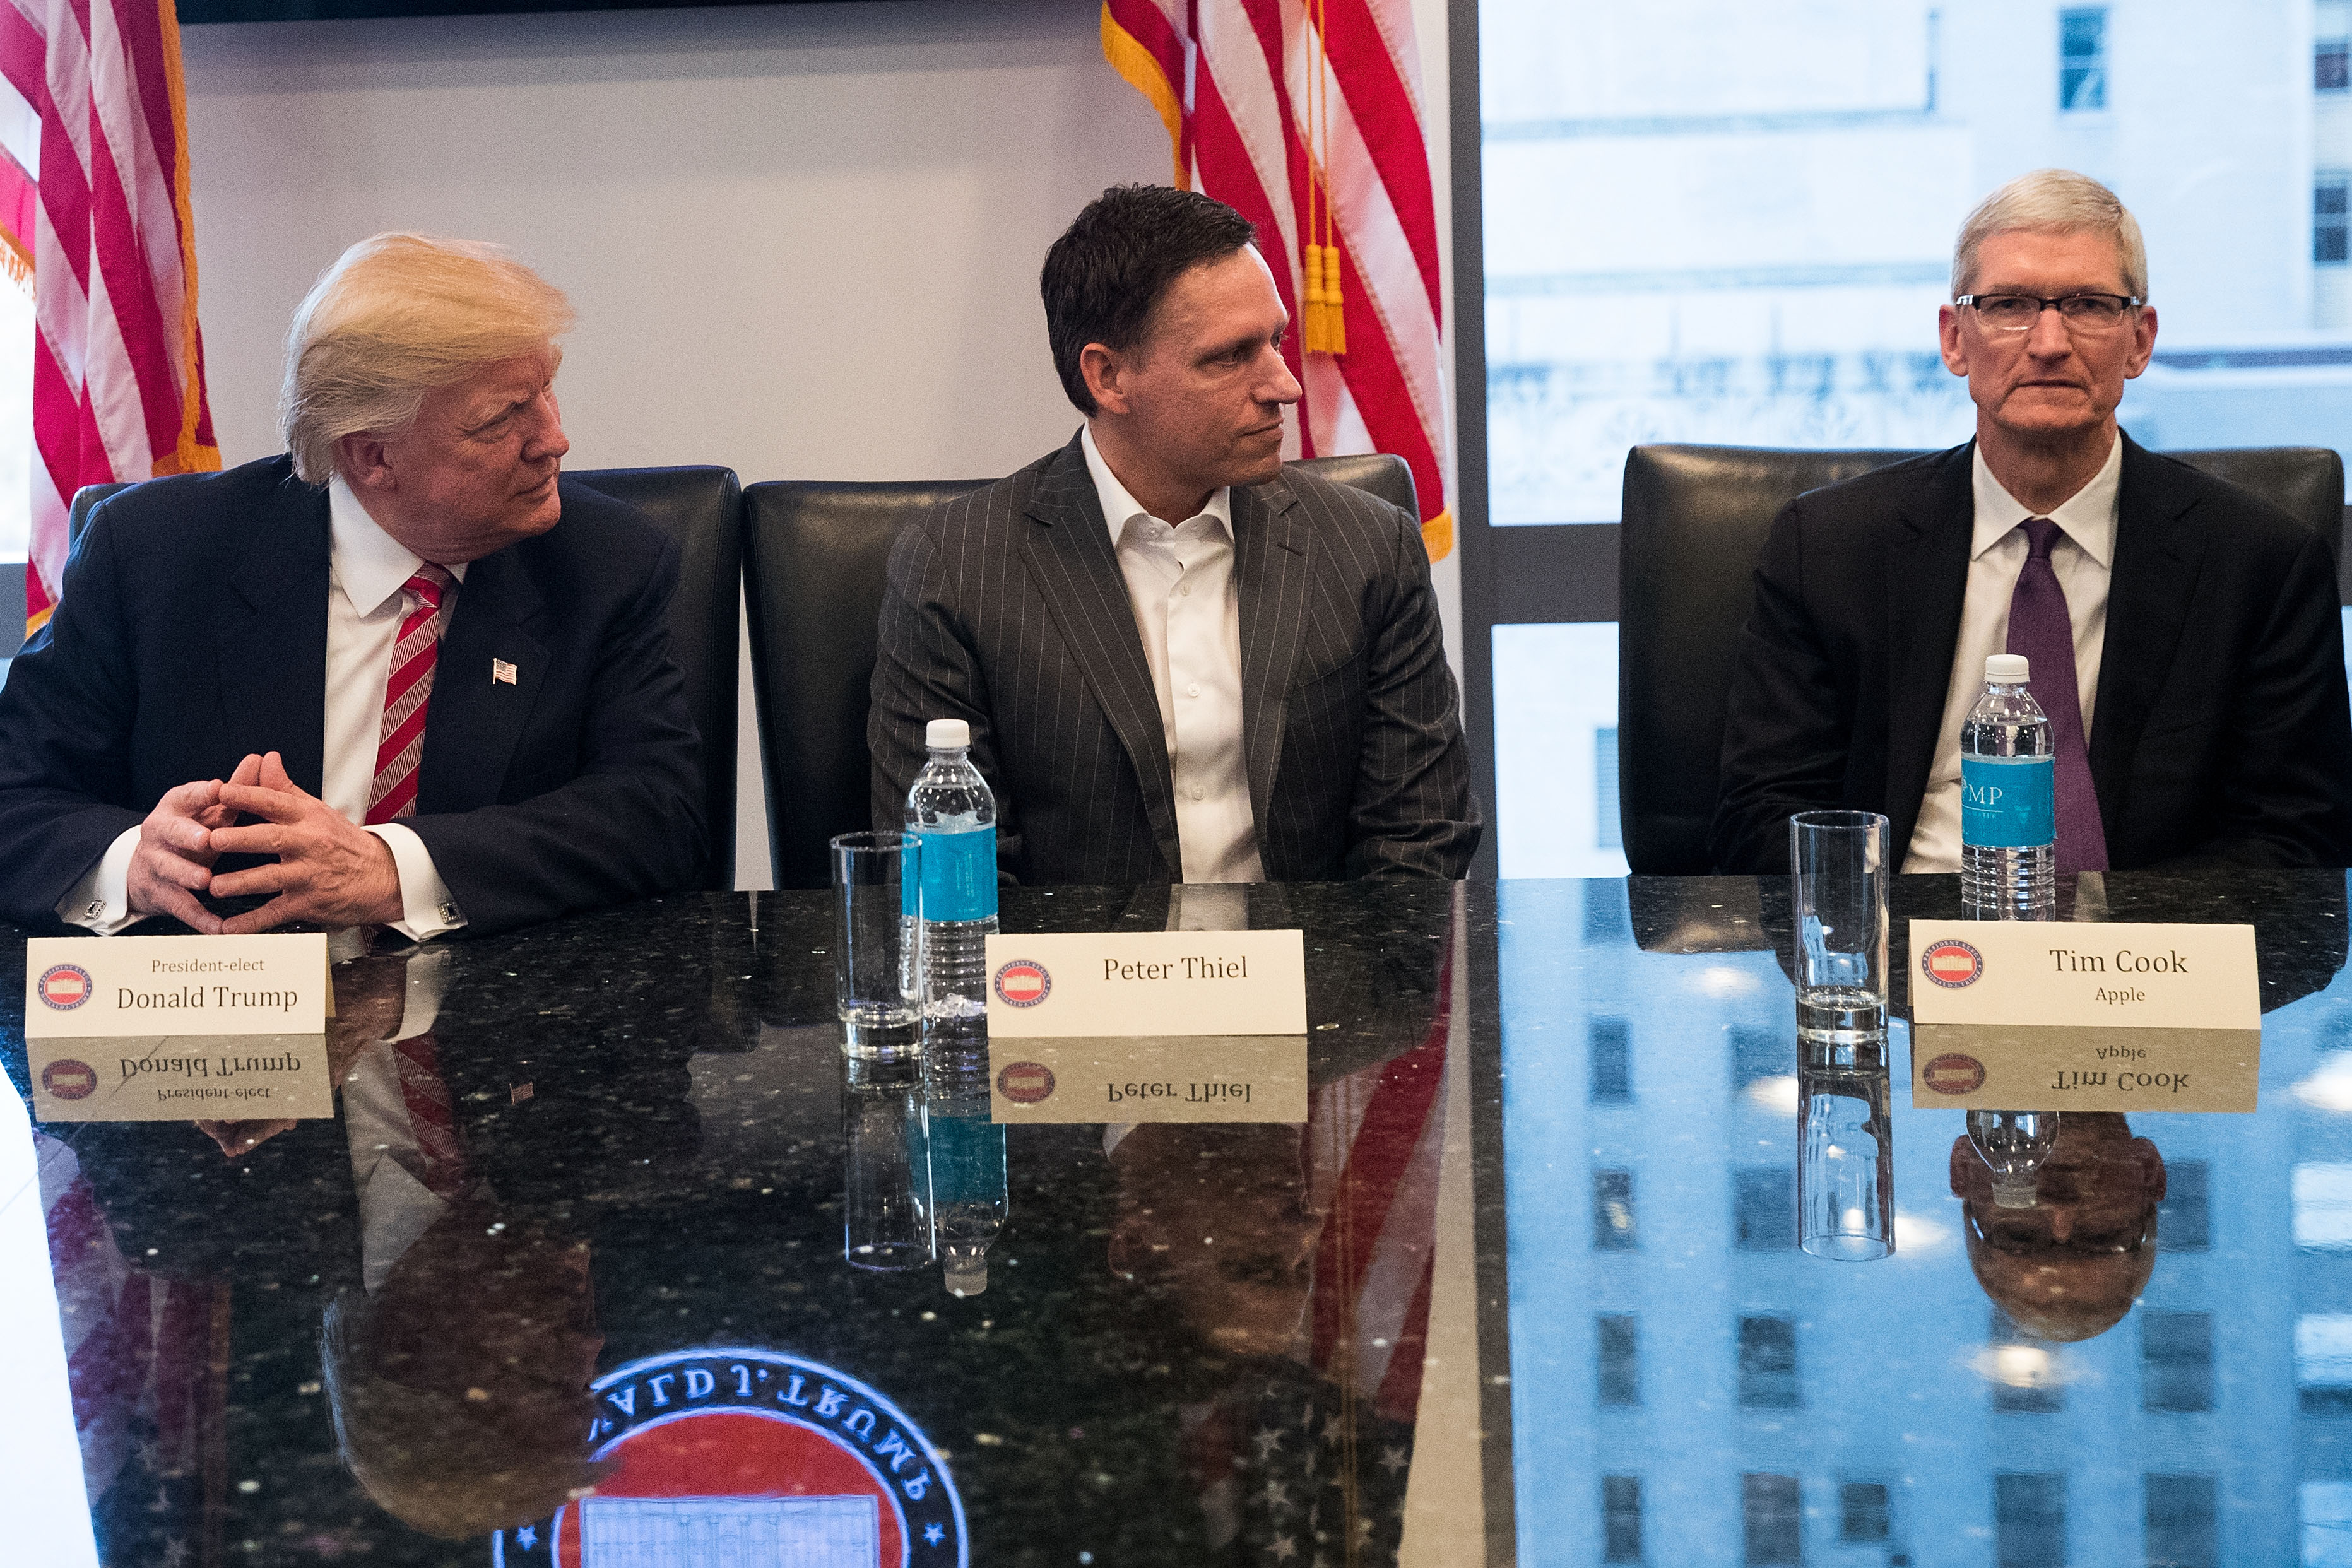 Google themes donald trump - Enlarge Donald Trump Peter Thiel Center Met With And Apple Ceo Tim Cook Right And Other Leaders In December 2016